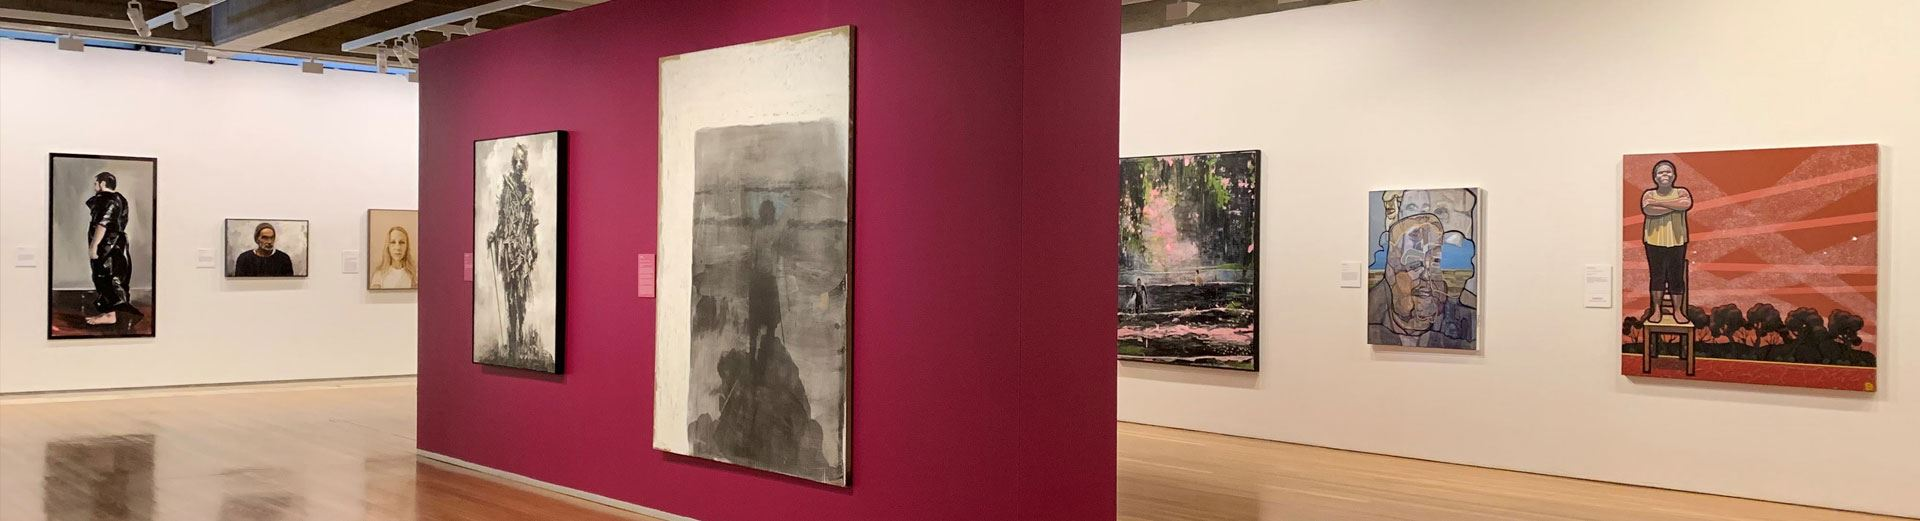 Current Exhibitions: Newcastle Art Gallery - Newcastle Art